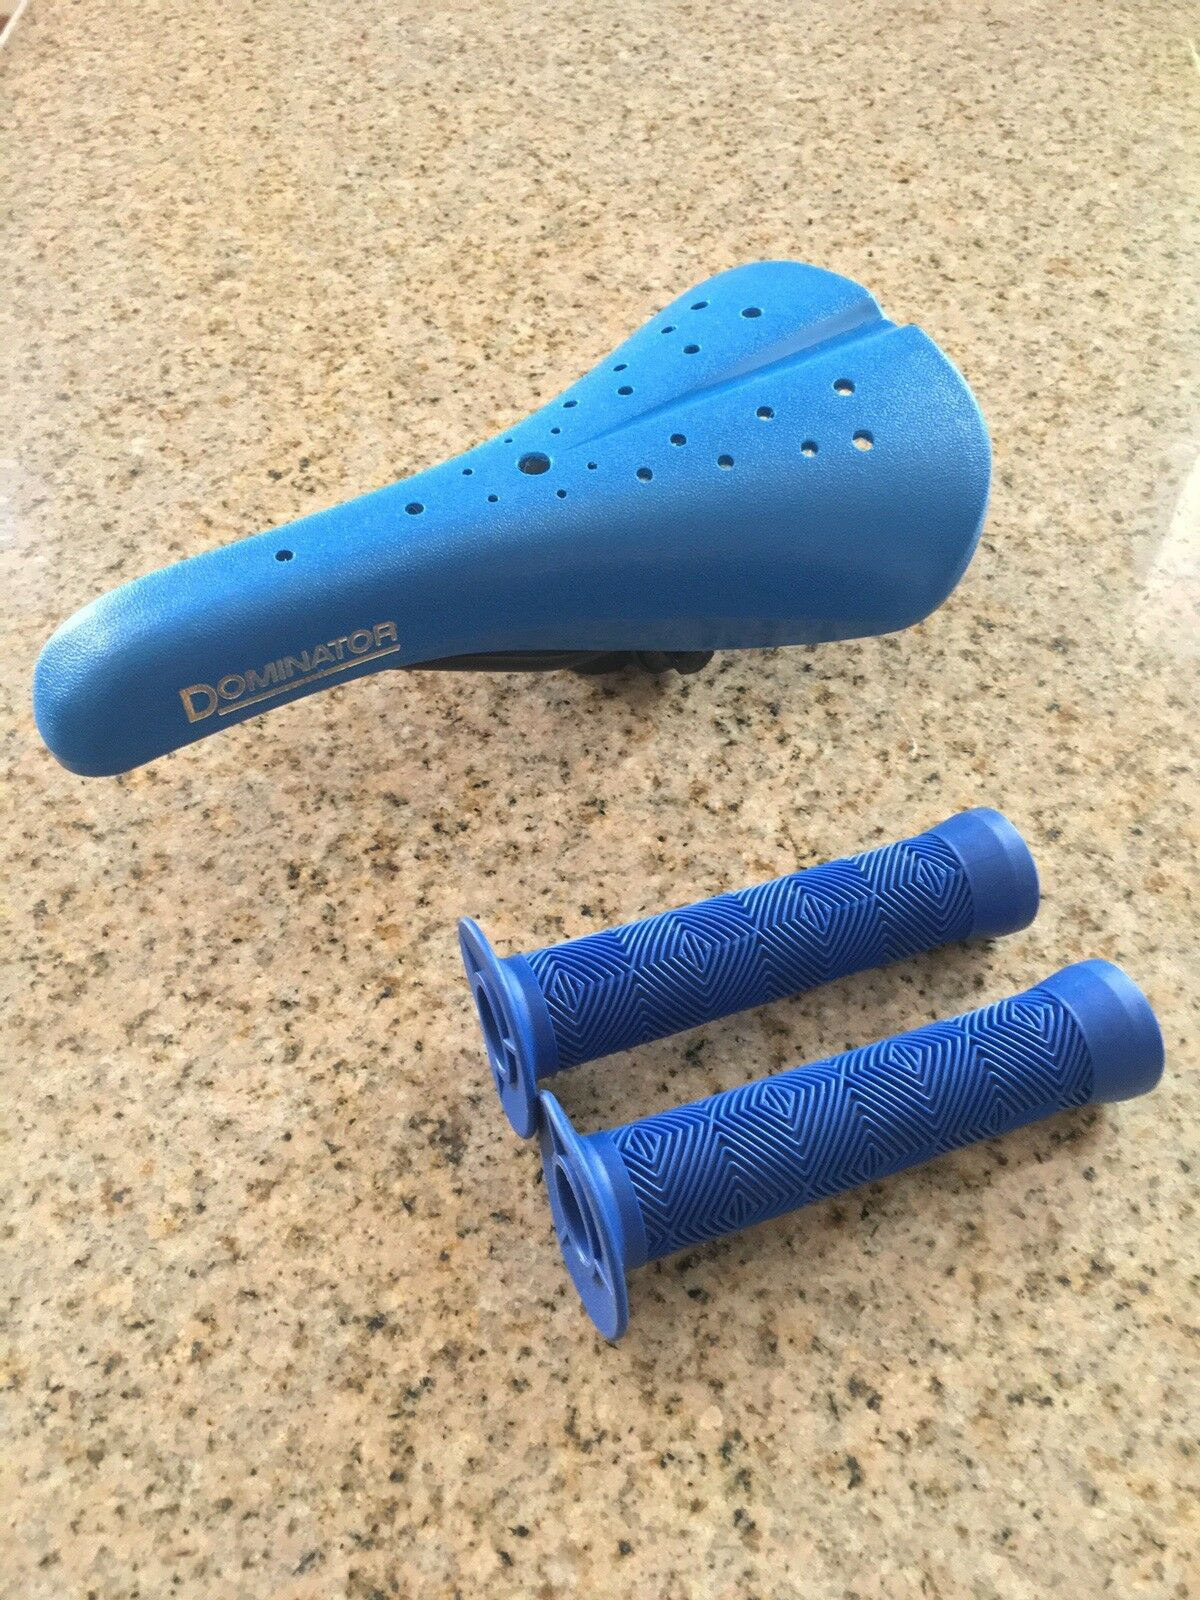 blueeE Viscount Dominator  Old School Style BMX Seat w  Grips  most preferential